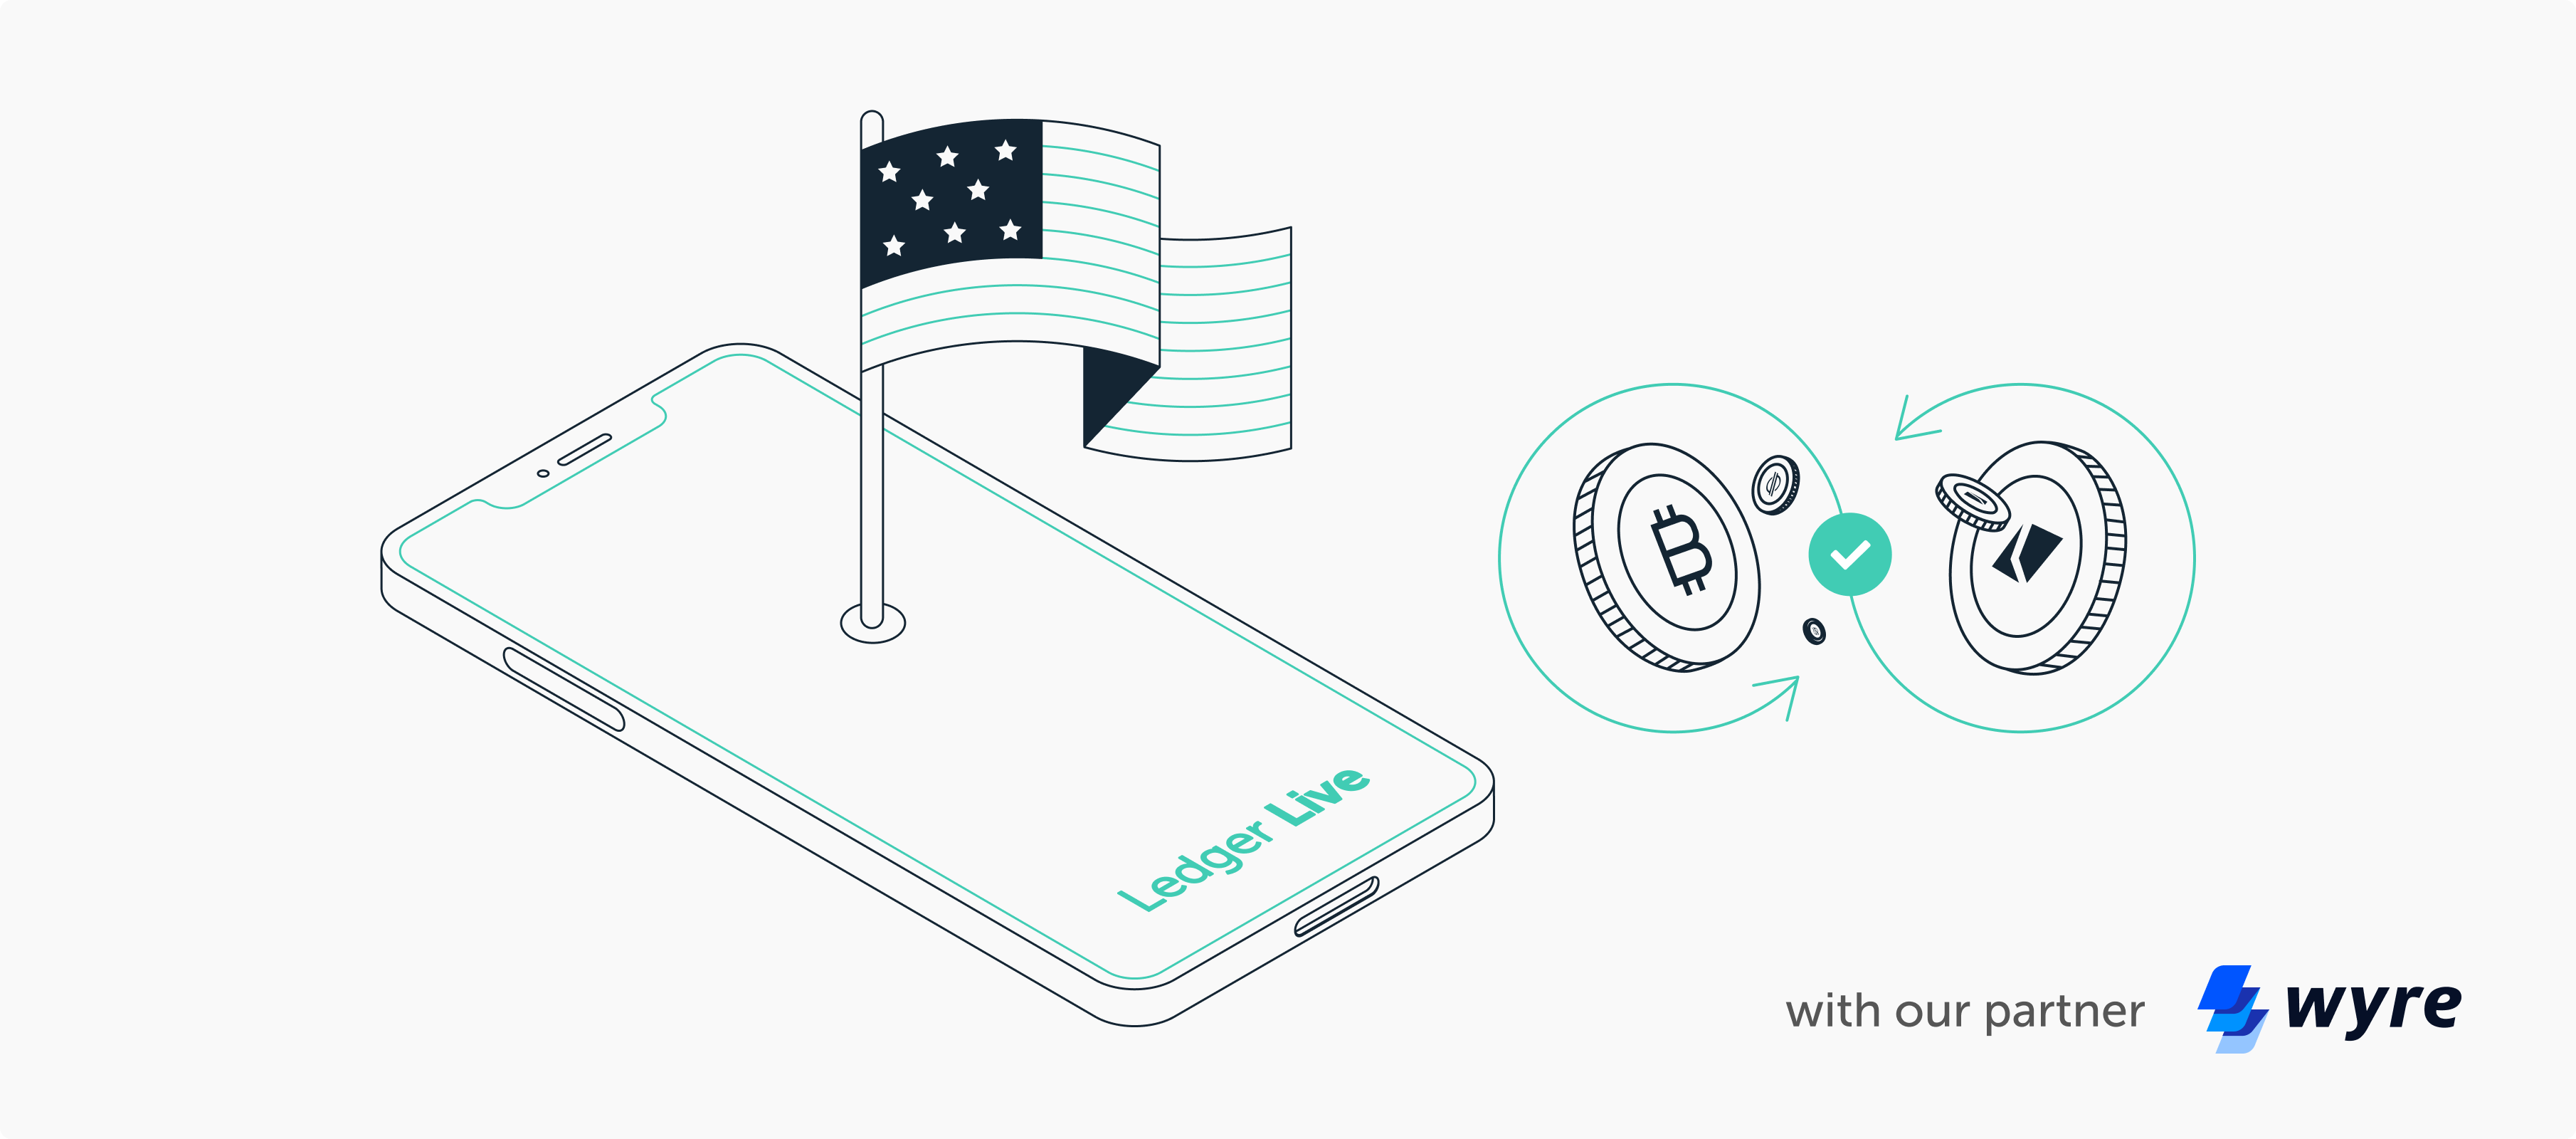 US investors can now exchange their digital assets on Ledger with Wyre